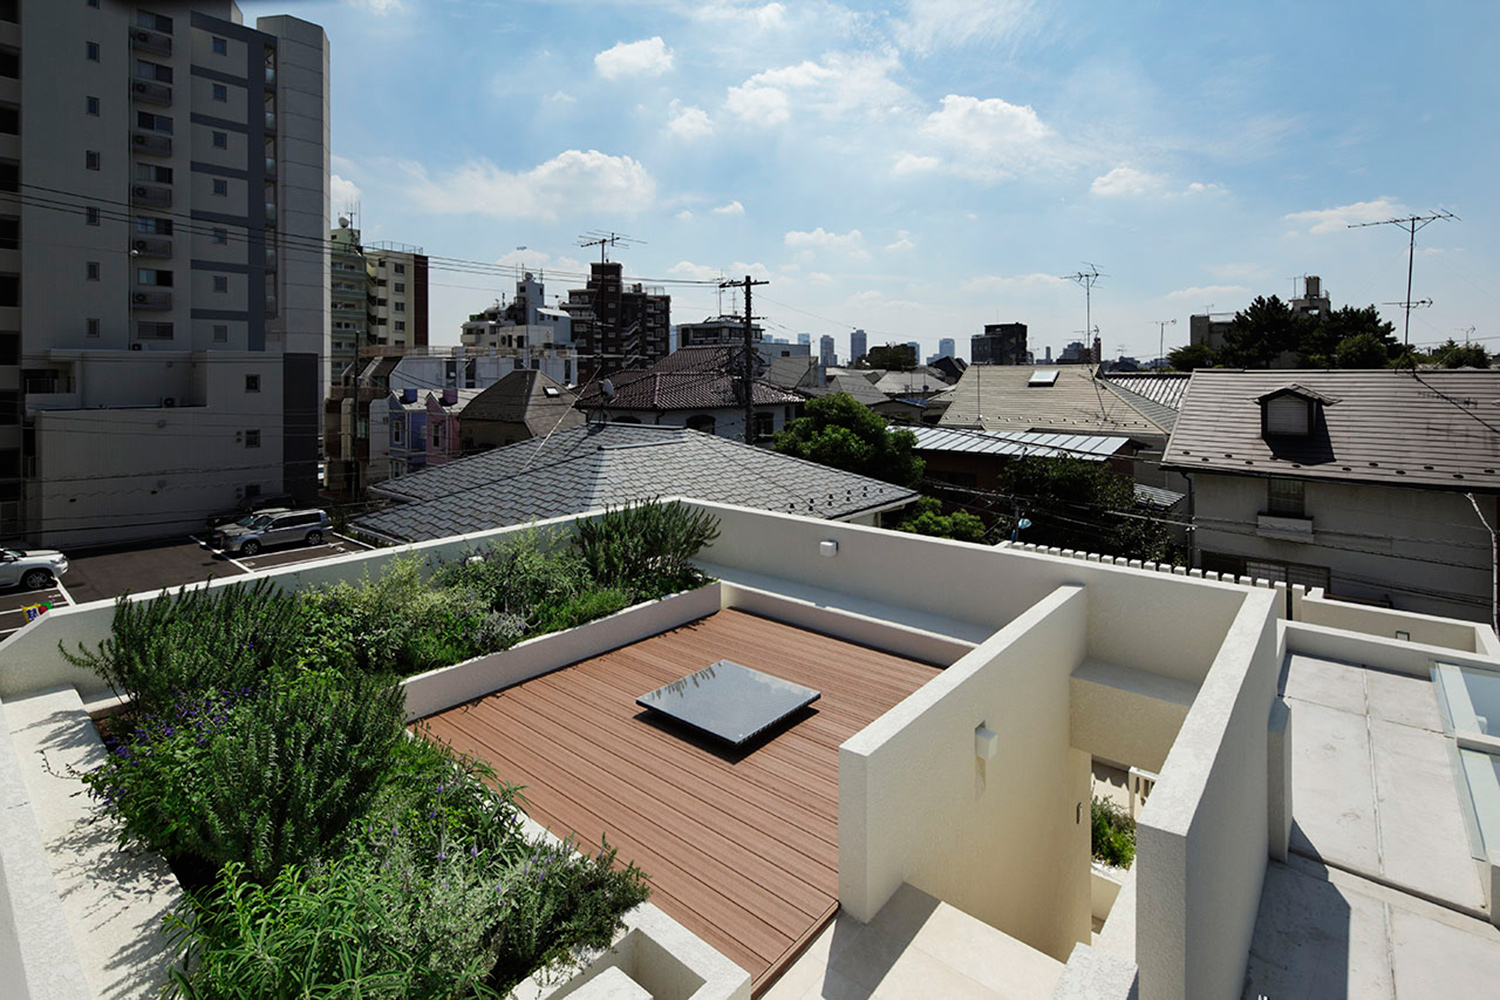 Aerial garden. An open place that will not be obstructed by surrounding buildings. }